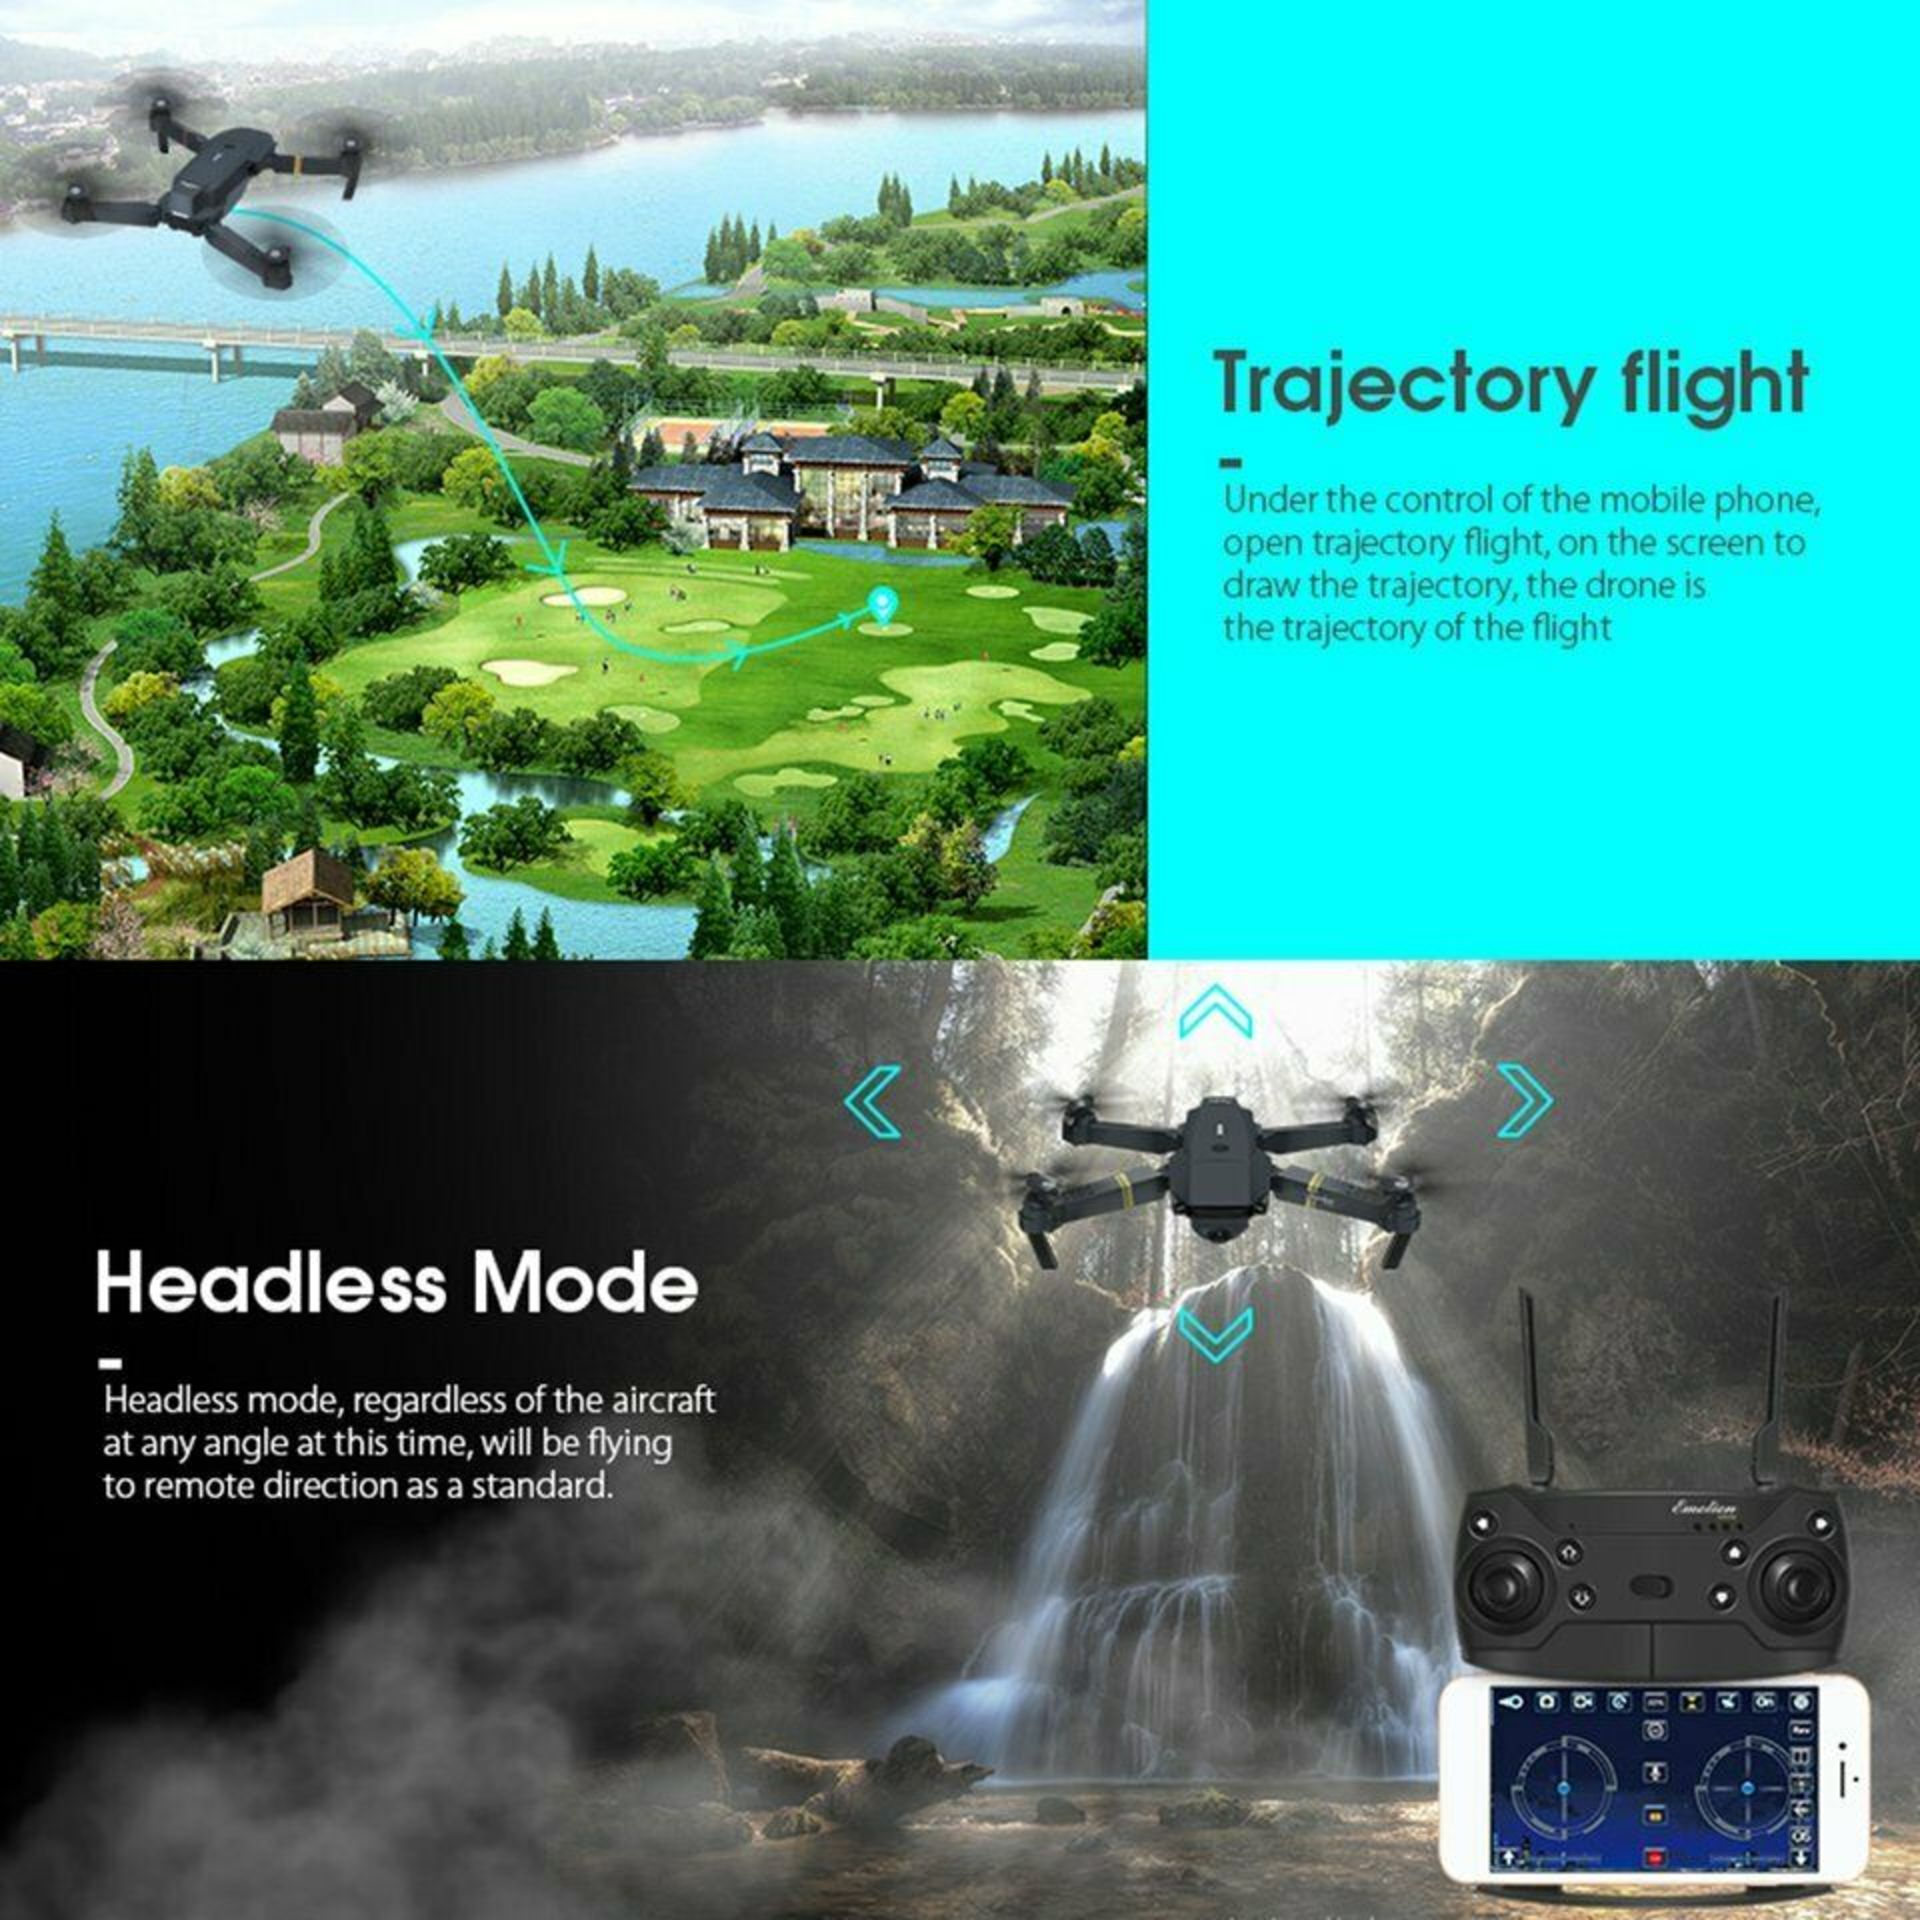 NEW & UNUSED DRONE X PRO WIFI FPV 1080P HD CAMERA FOLDABLE RC QUADCOPTER + BAG *PLUS VAT* - Image 9 of 12